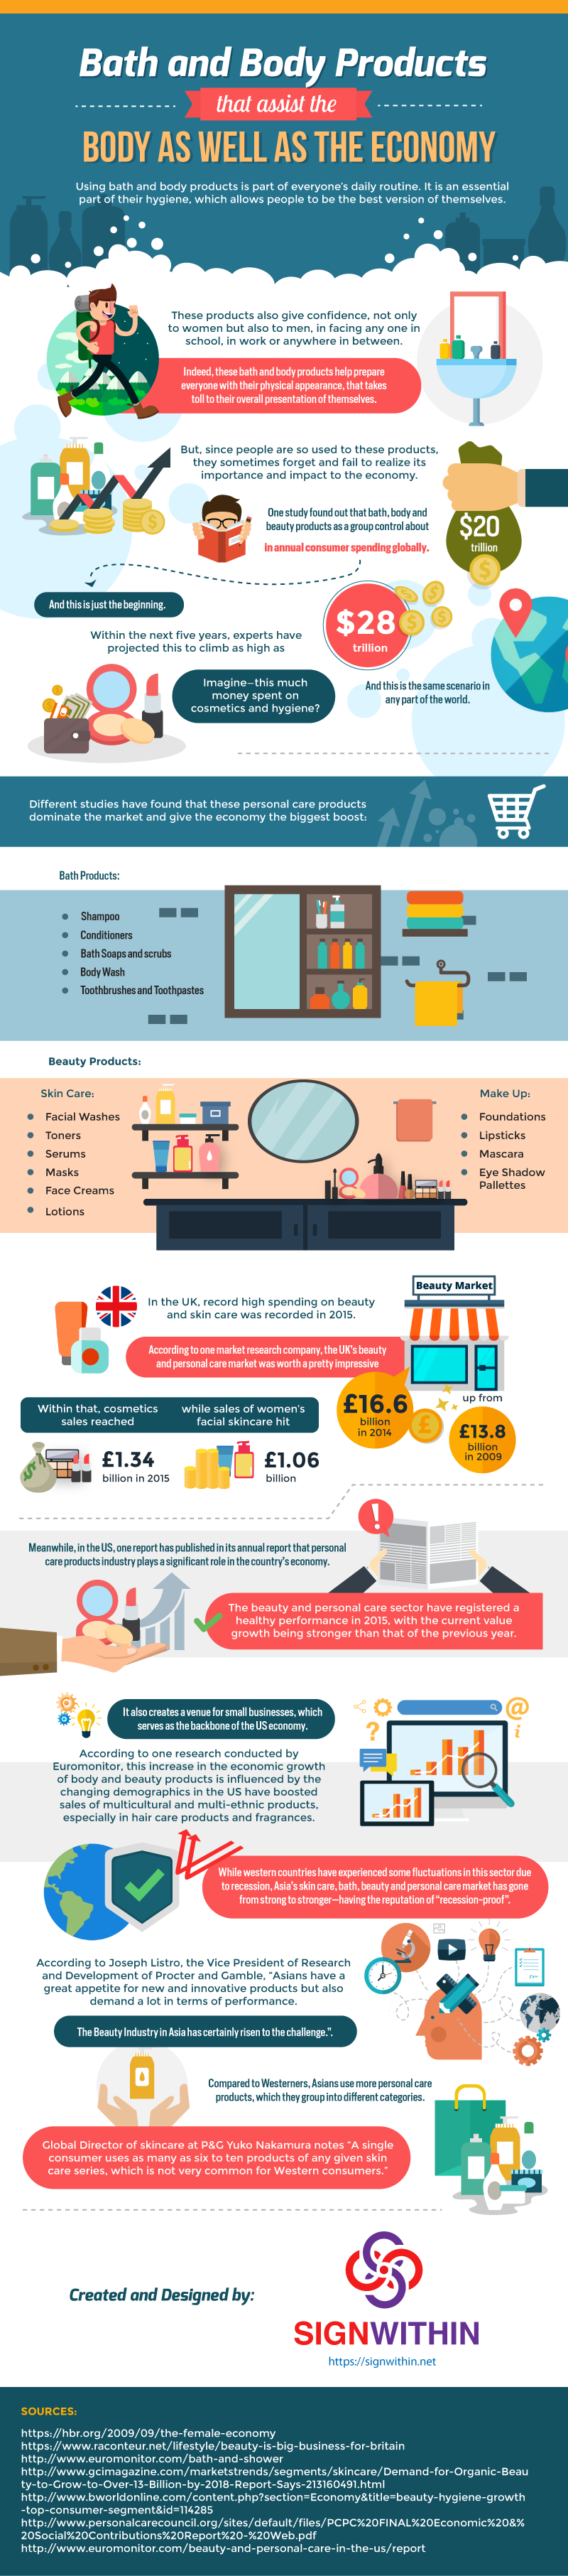 Bath and Body Products that Assist the Body as well as the Economy (Infographic)